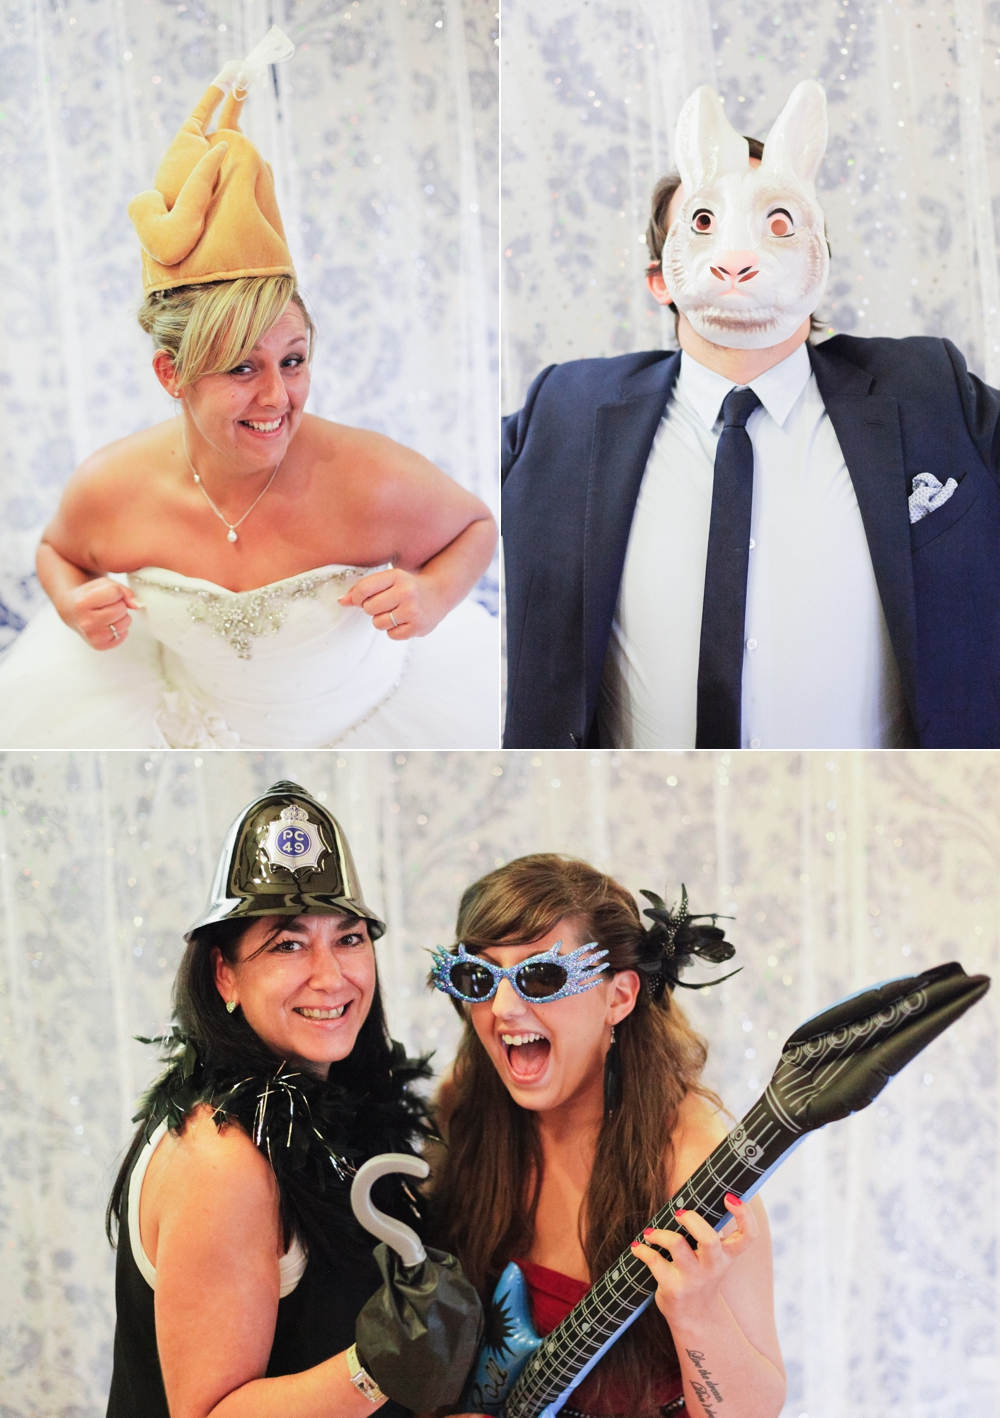 Wedding-Photo-Booth-Essex_0001.jpg